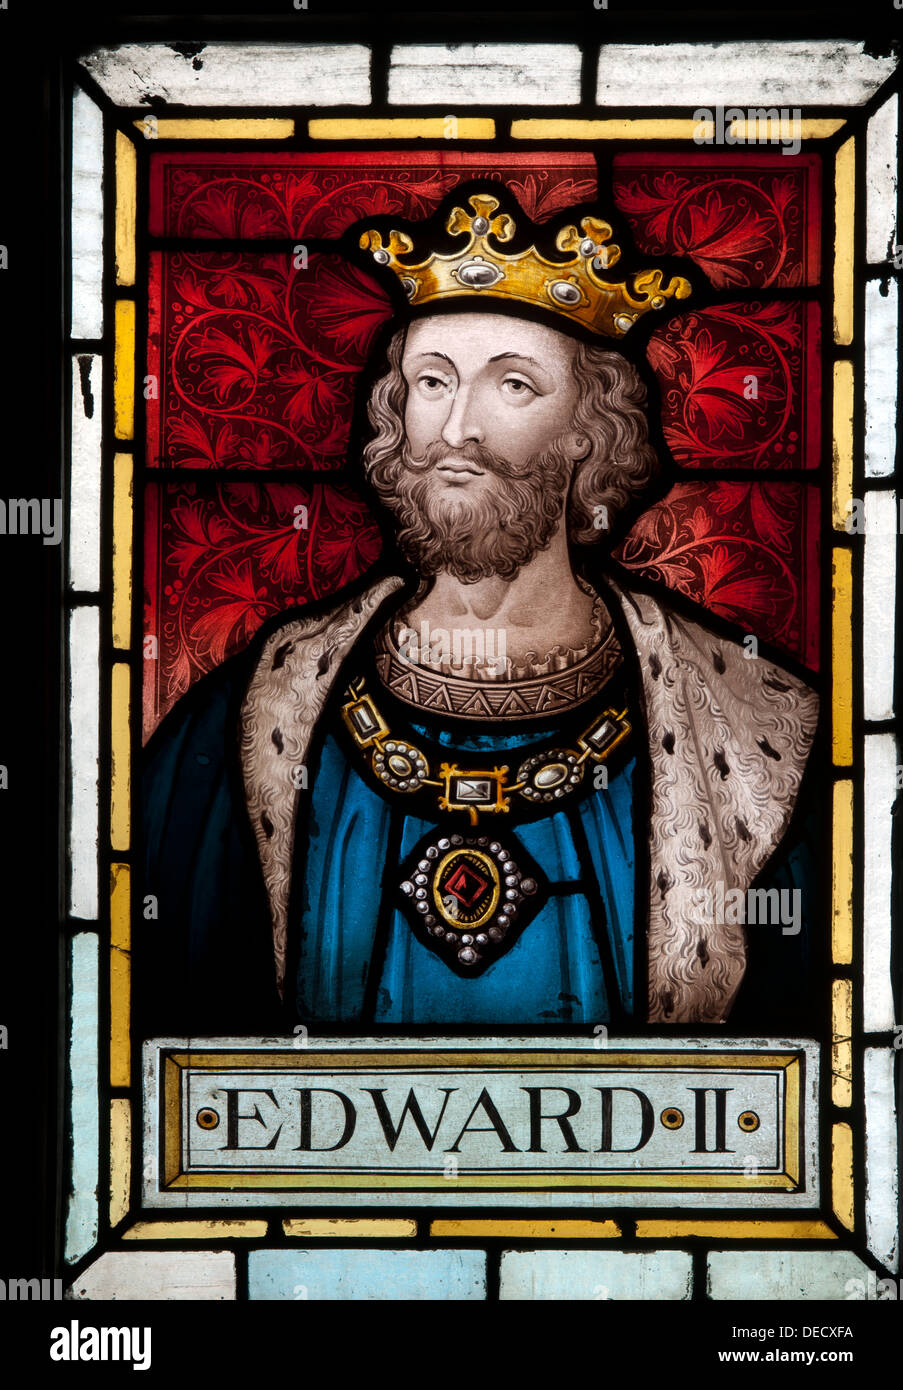 Marlowe edward ii homosexuality and christianity